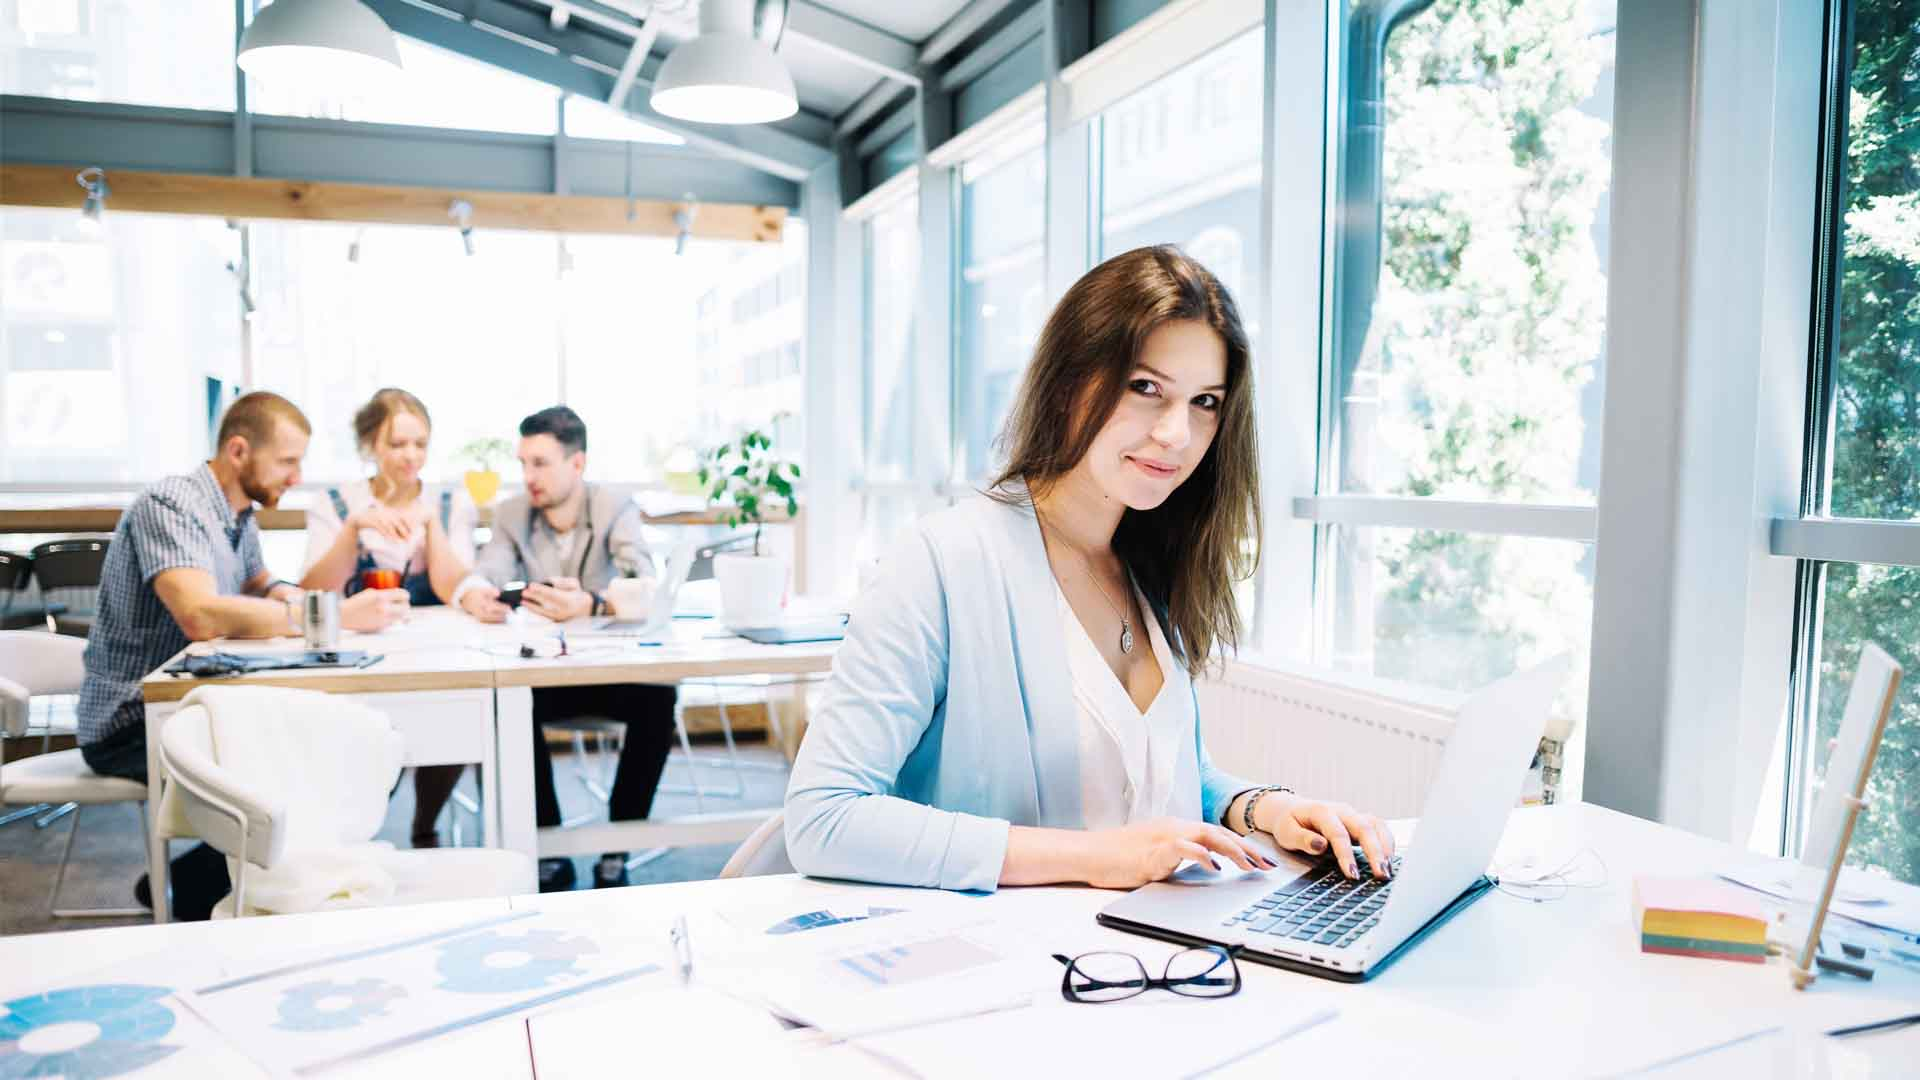 The Role of Goal Setting in the Work Environment